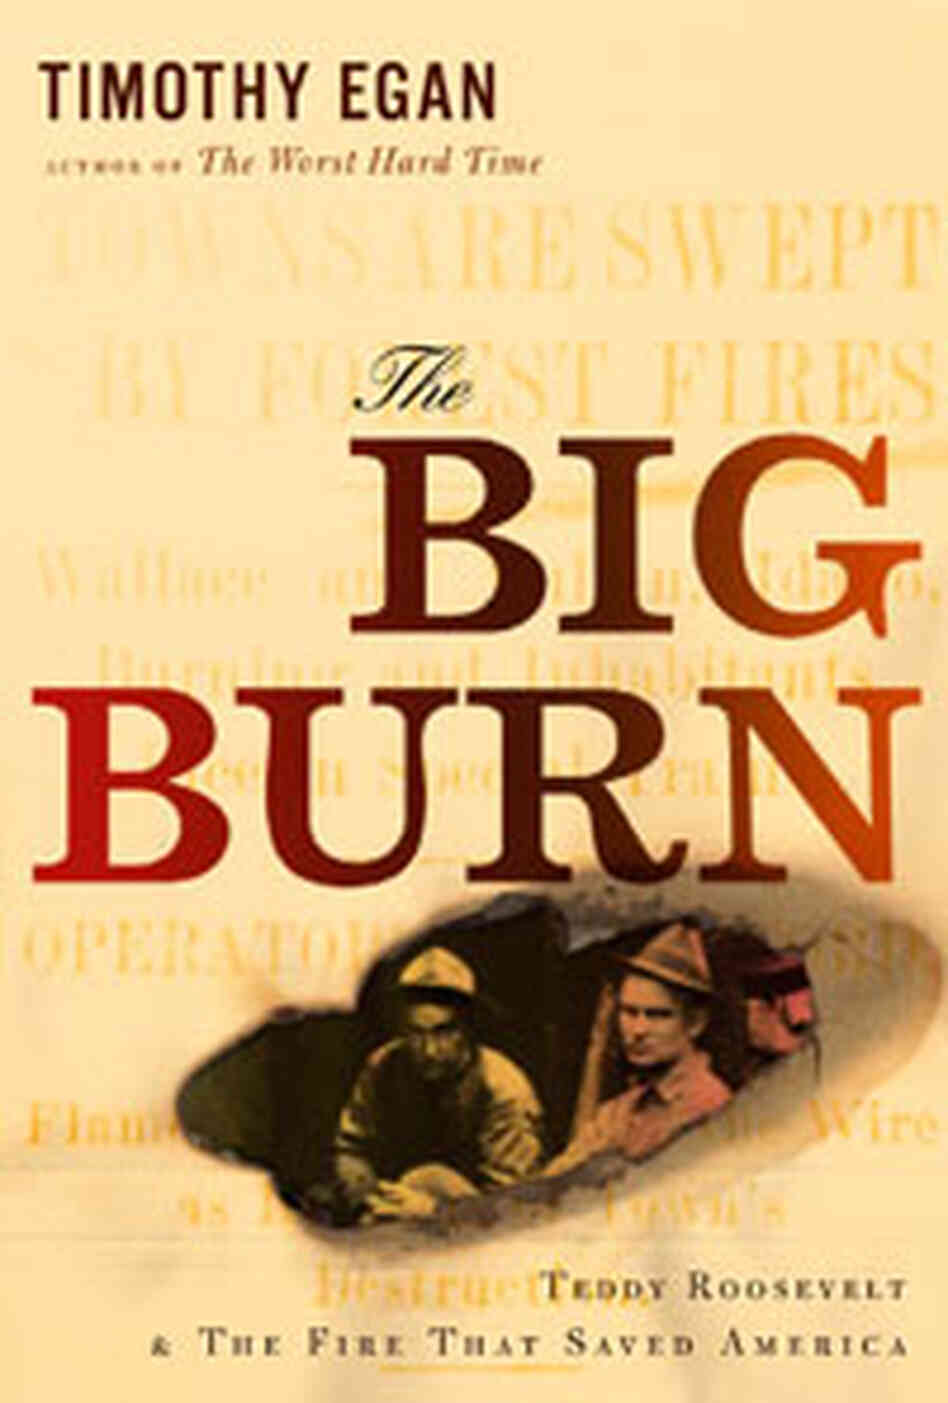 'The Big Burn'